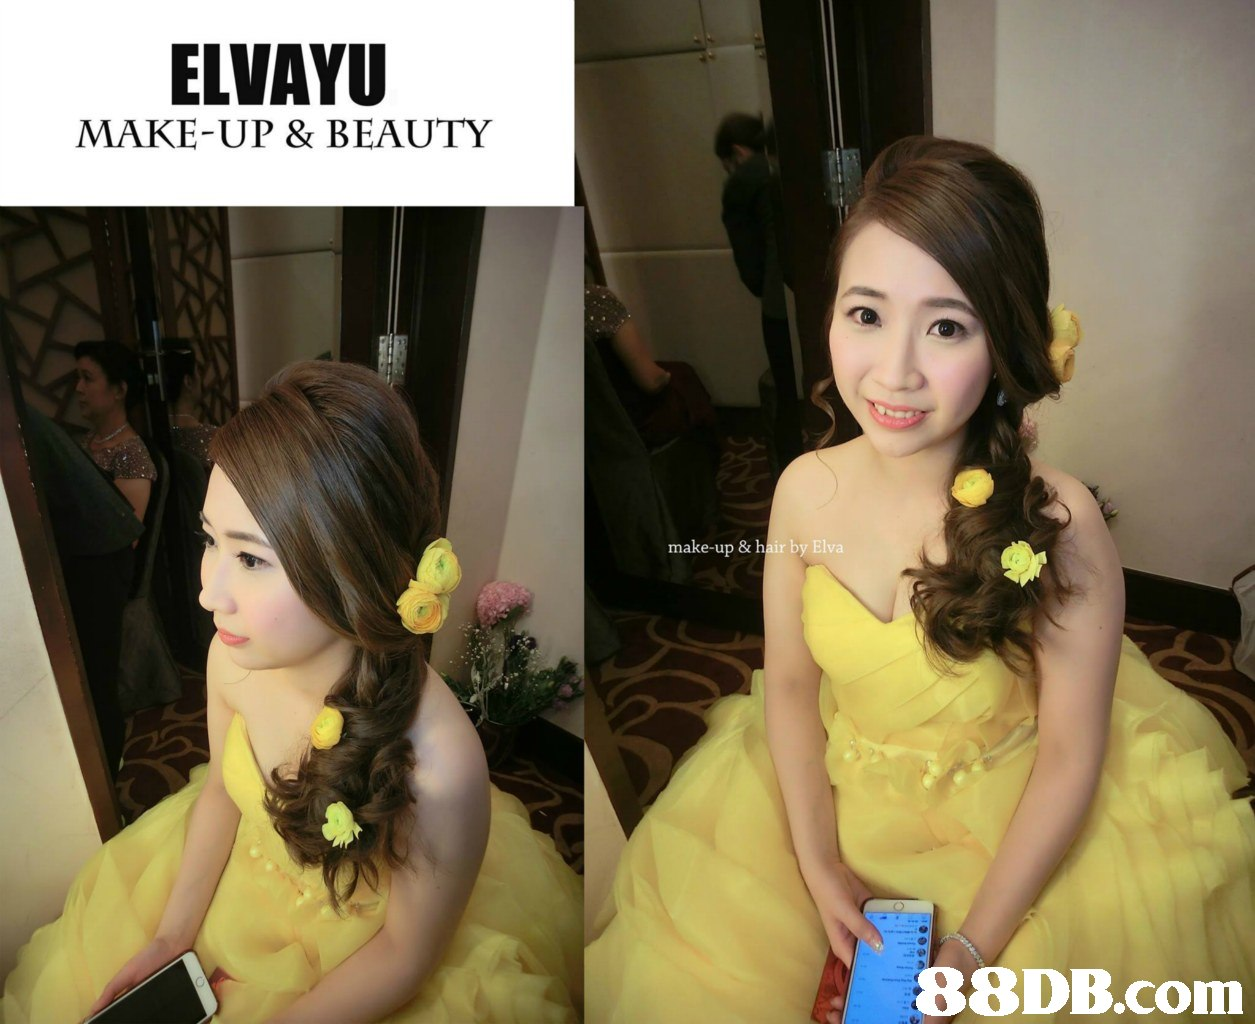 ELVAYU MAKE-UP & BEAUTY make-up & hair by Elva 88DB.com  hairstyle